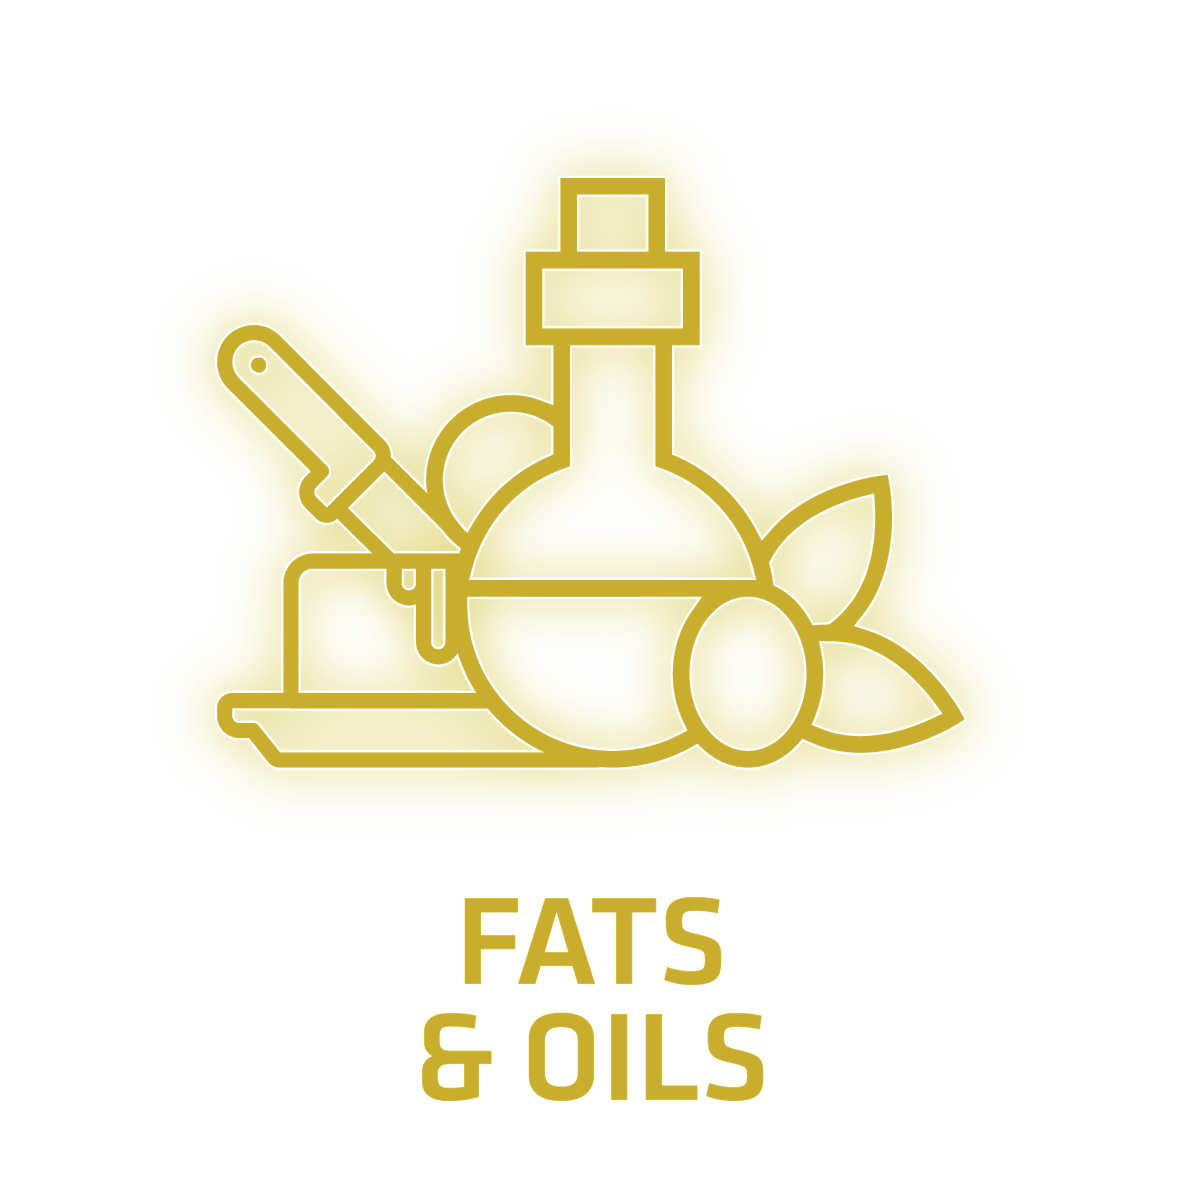 Gulfood fats and oils